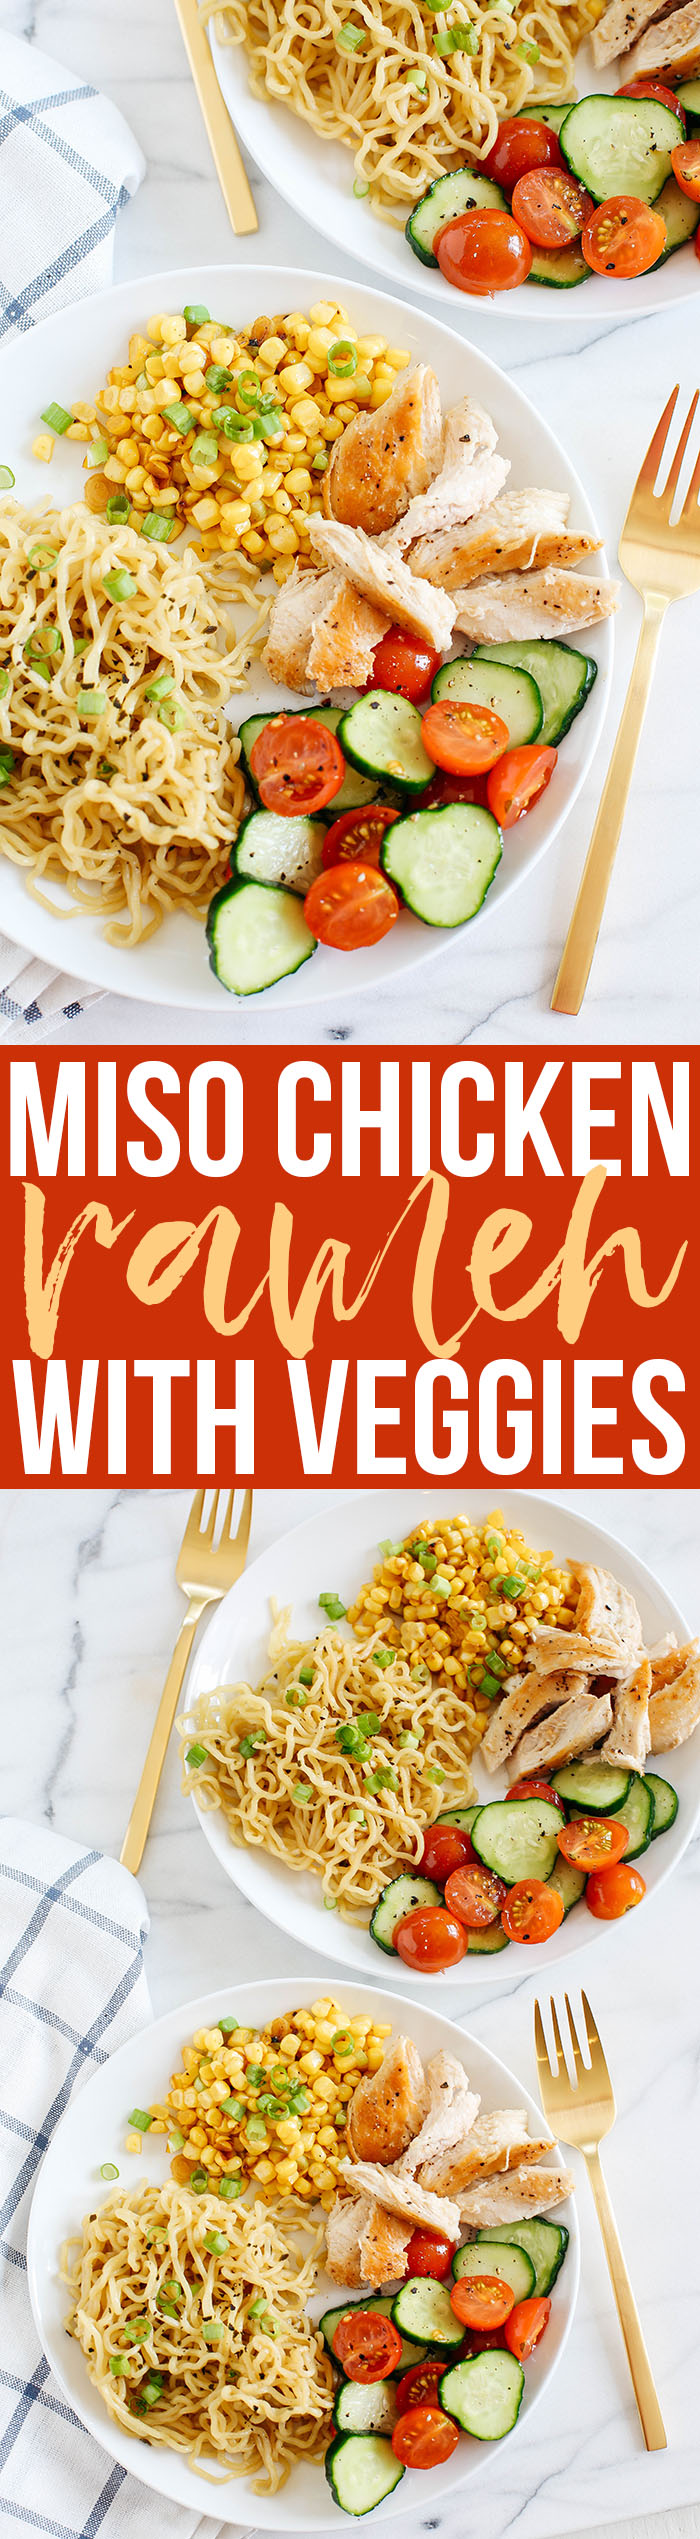 Delicious Miso Chicken and Ramen with fresh summer veggies makes the perfect weeknight meal in just 30 minutes!